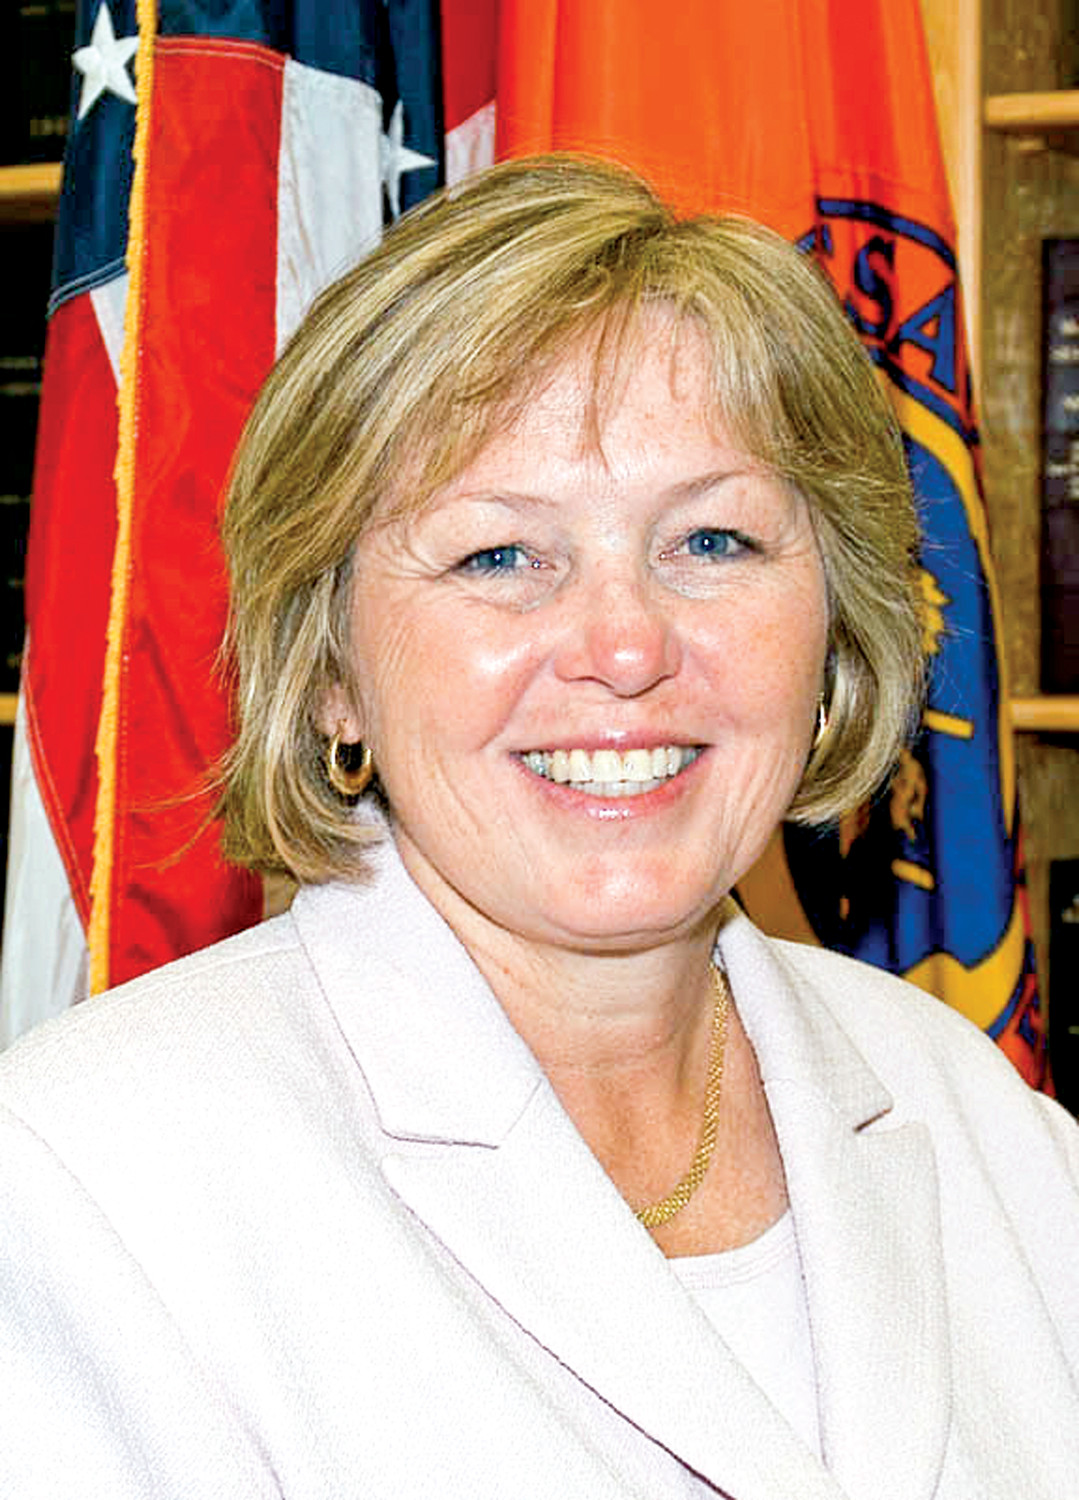 Nassau County Legislator Denise Ford was re-elected to represent the county's 4th Legislative District.